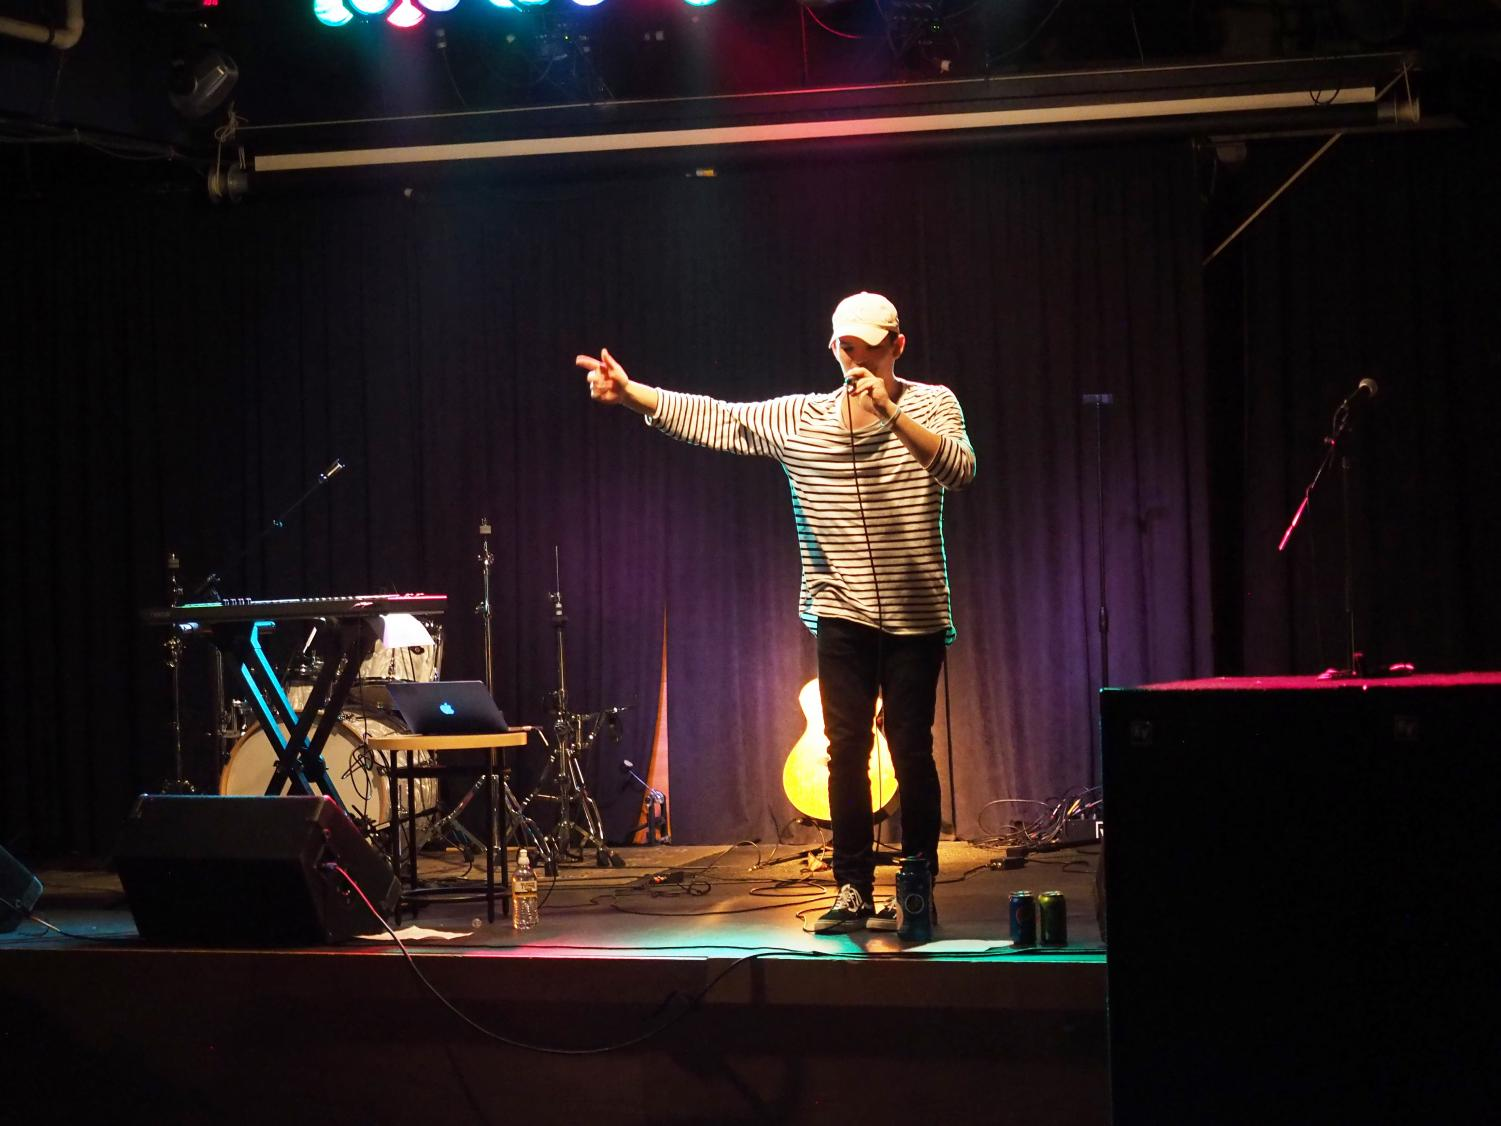 Solo artist Zachary Mayer sings during his set at Pop Night. Mayer played multiple instruments during his performance, where he sang original songs as well as a few covers of popular songs.